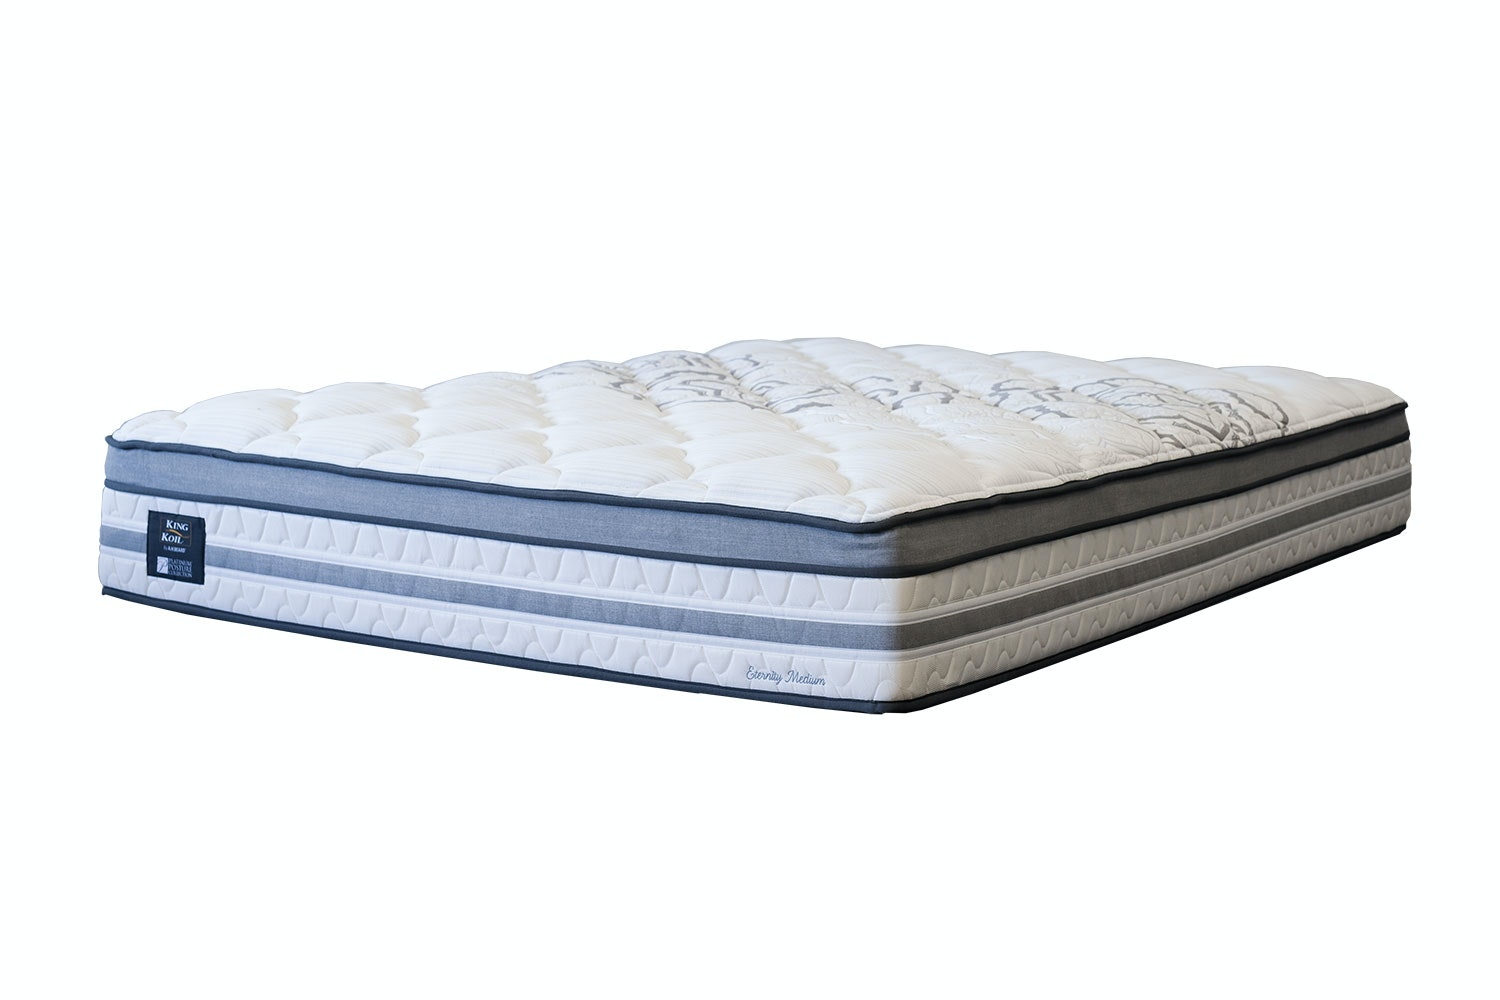 Eternity Medium King Mattress by King Koil